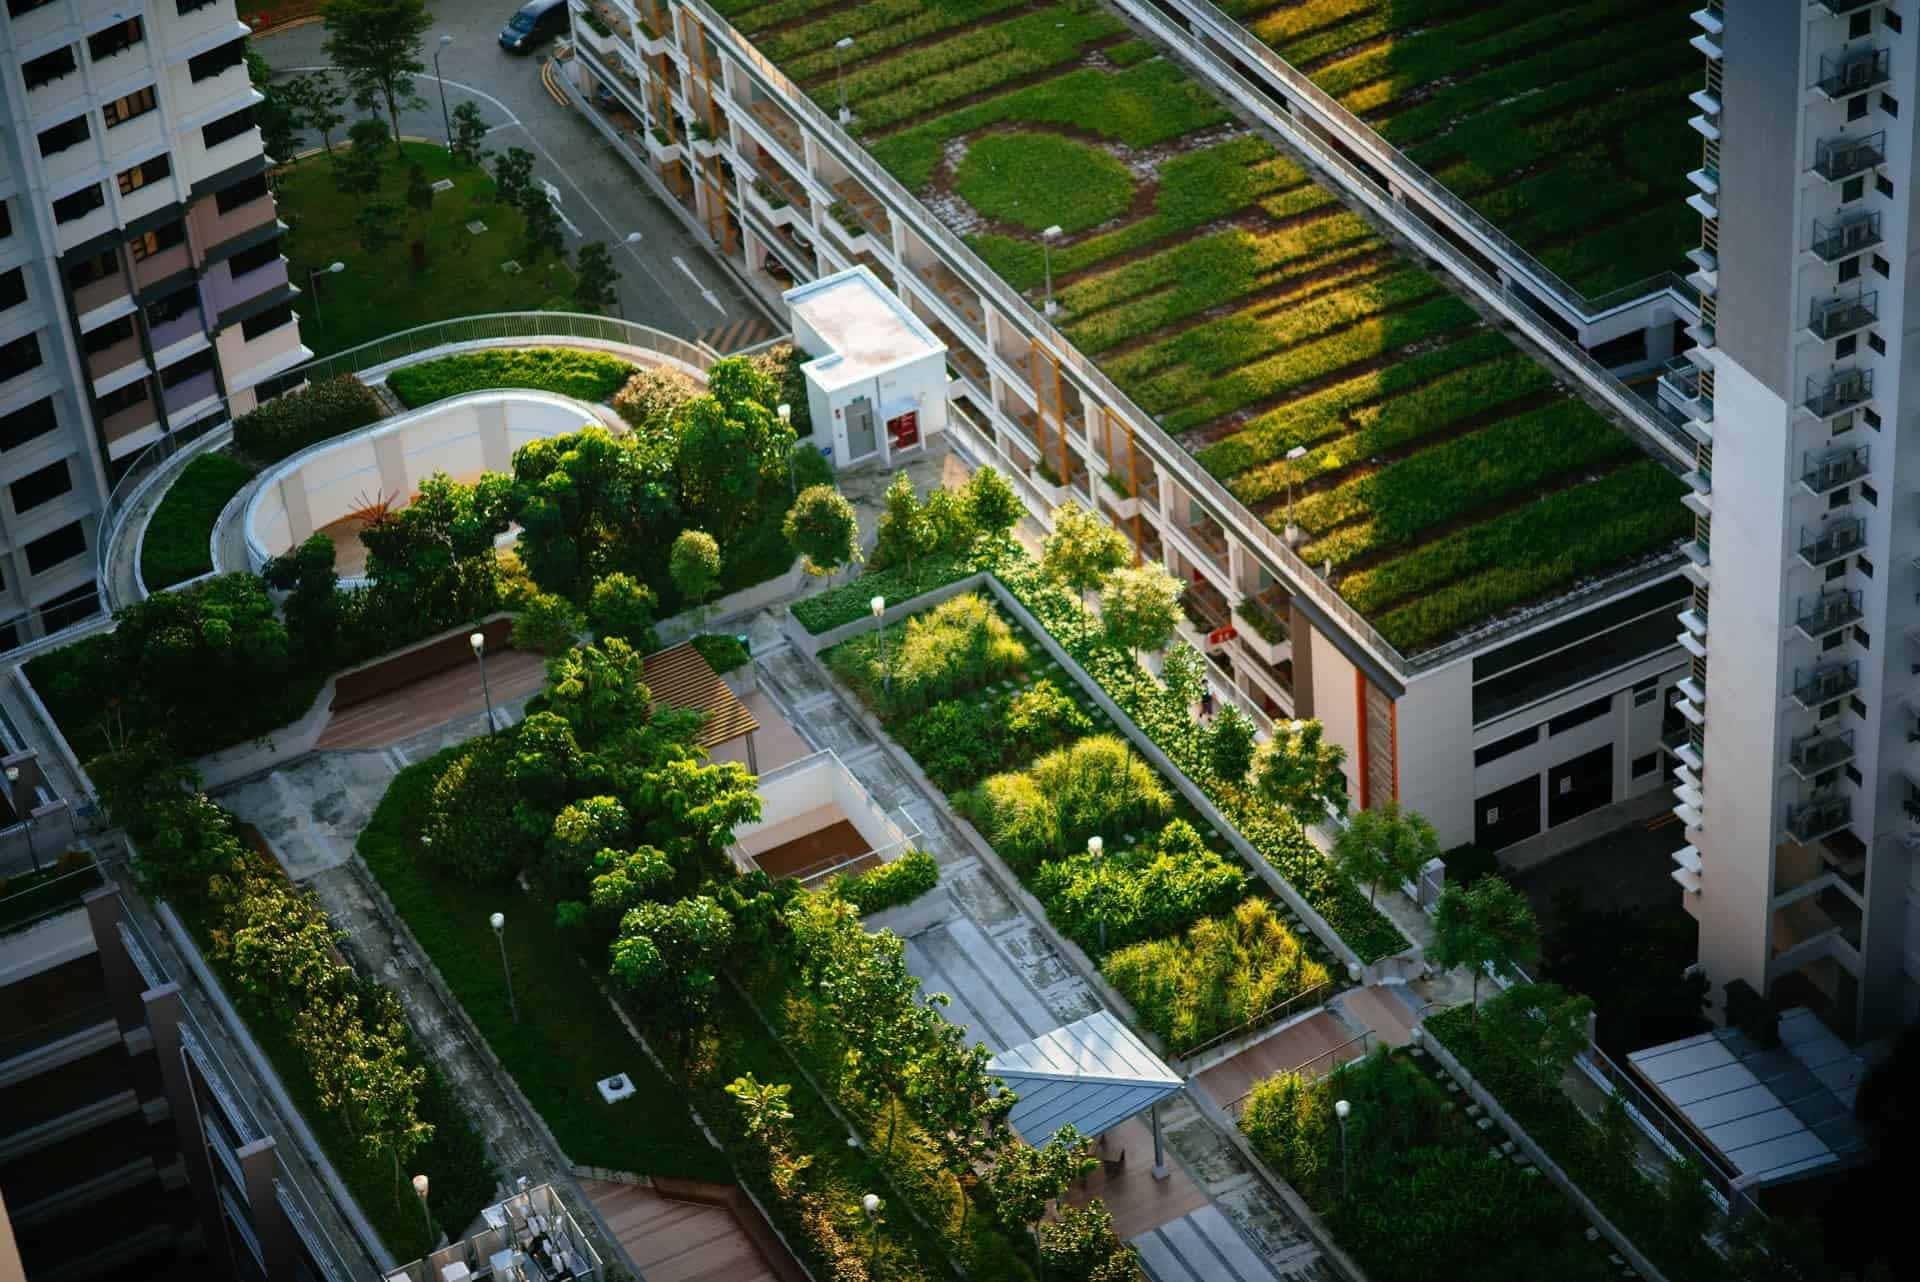 Green roof - Roof - Ag Pro Technologies, Agricultural Products for Landscapers, Homeowners, Lawn Care, Sod Farms, and Gardeners